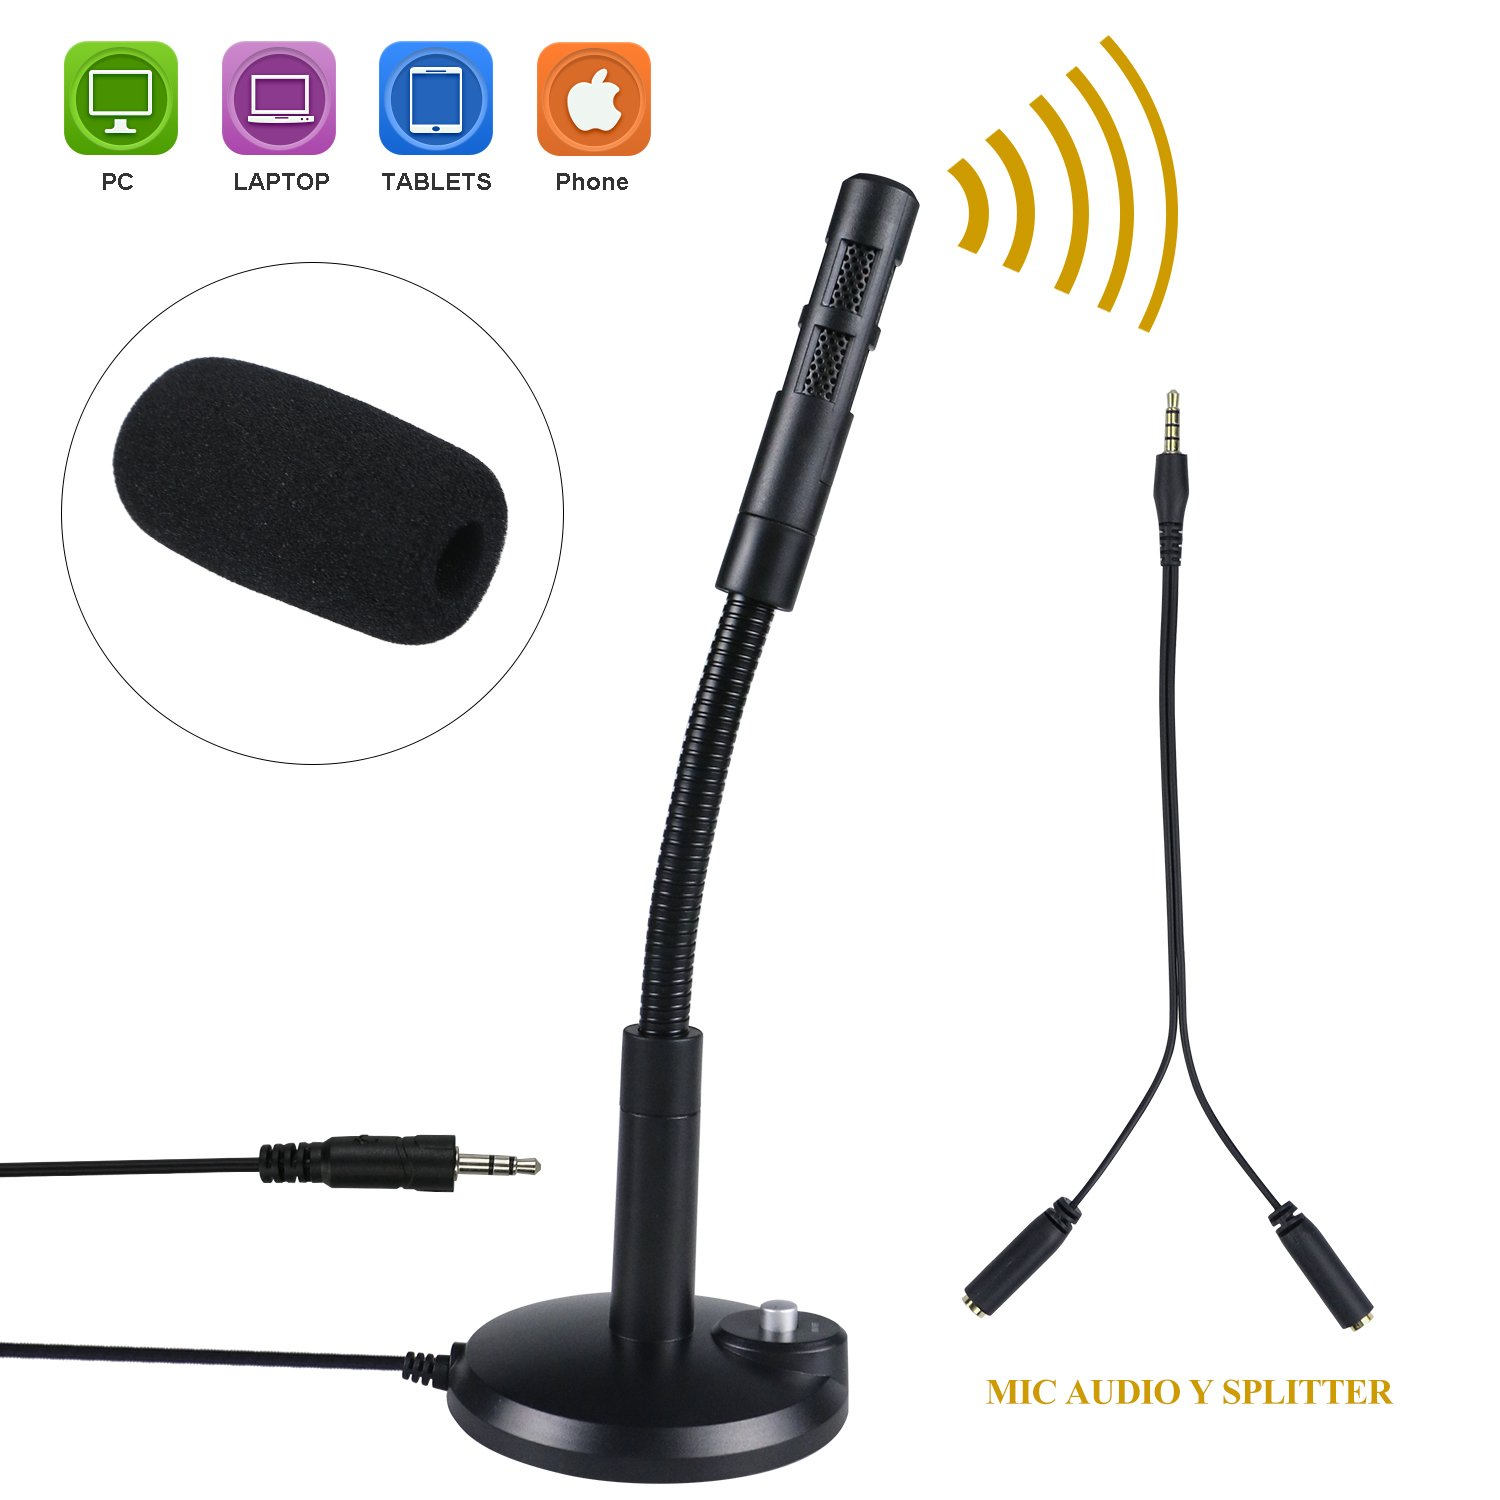 Philonext Condenser Microphone, Portable Mini Condenser Microphone, 3.5mm Plug & Play Home Studio Vocal Recording Microphone with Tripod Stand for PC Laptop Tablet and Phone (Tape 3)